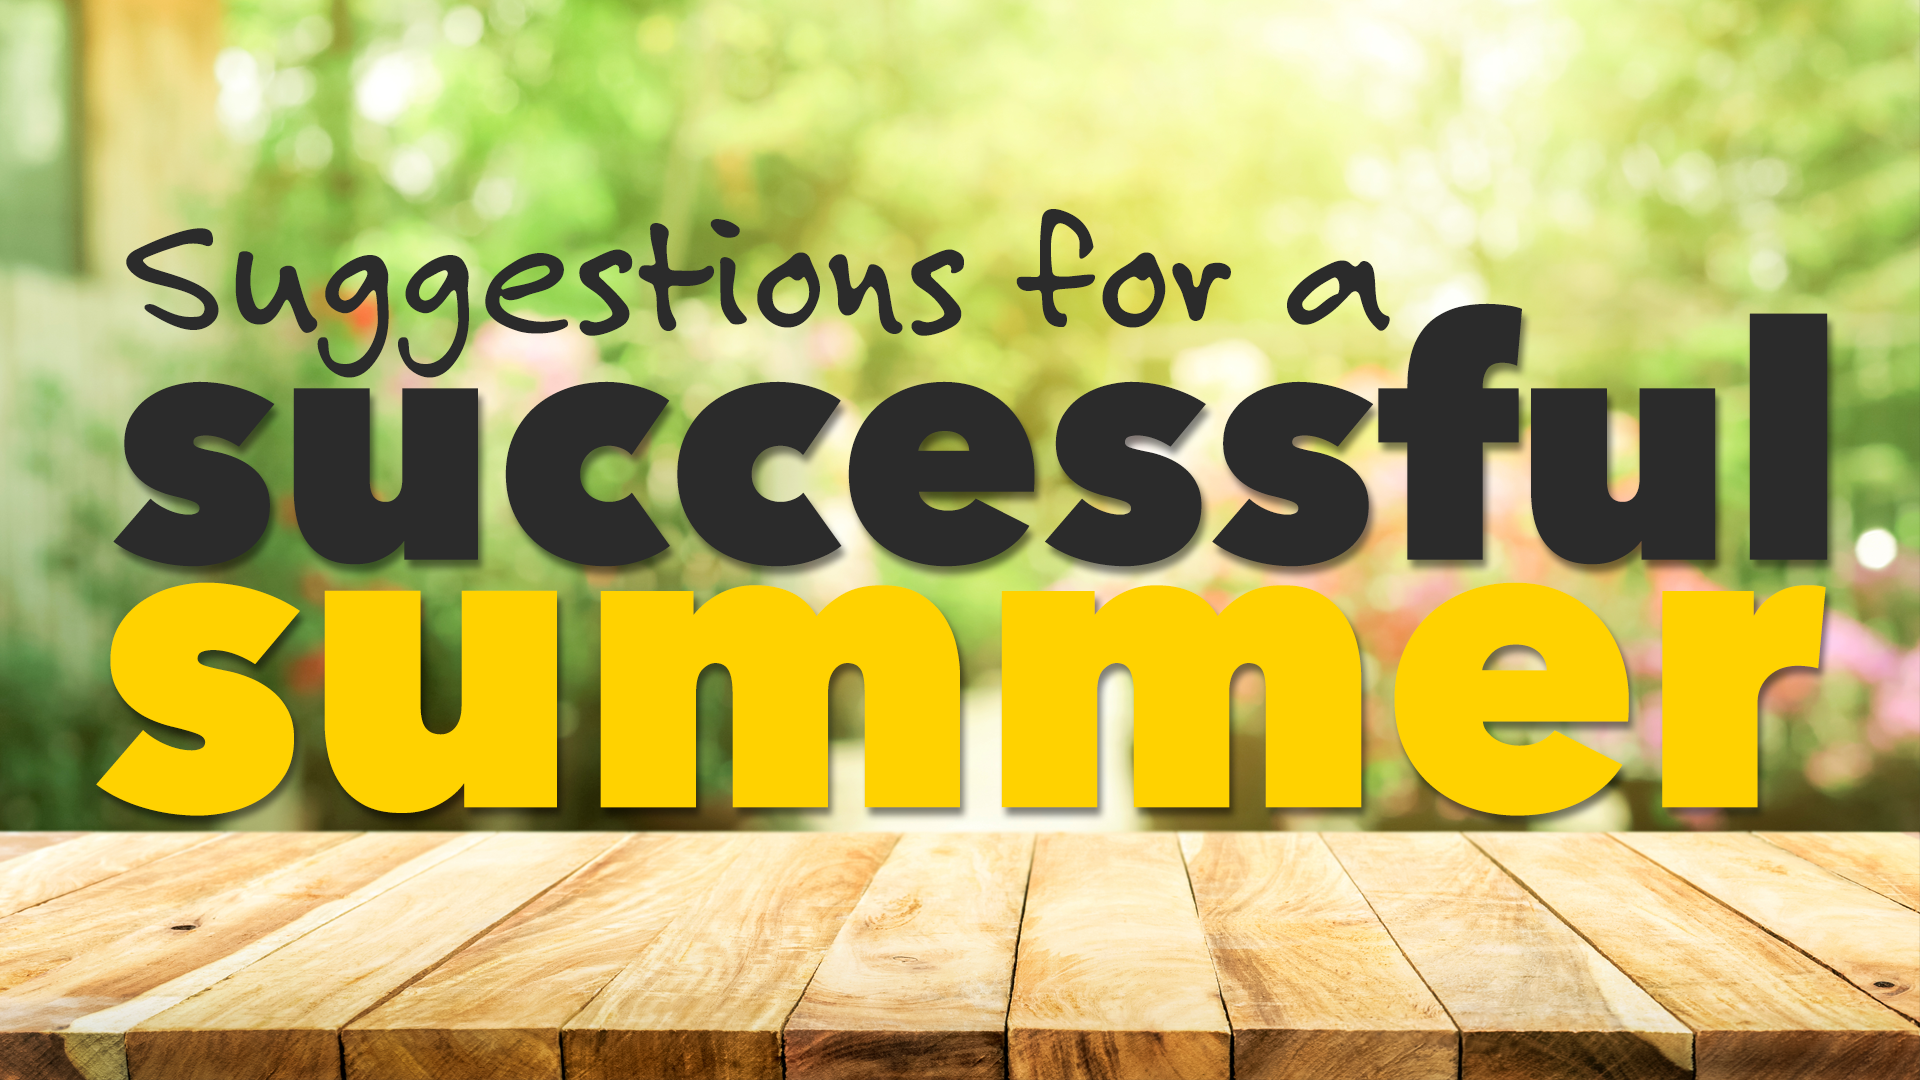 Suggestions for a Successful Summer (Part 1)